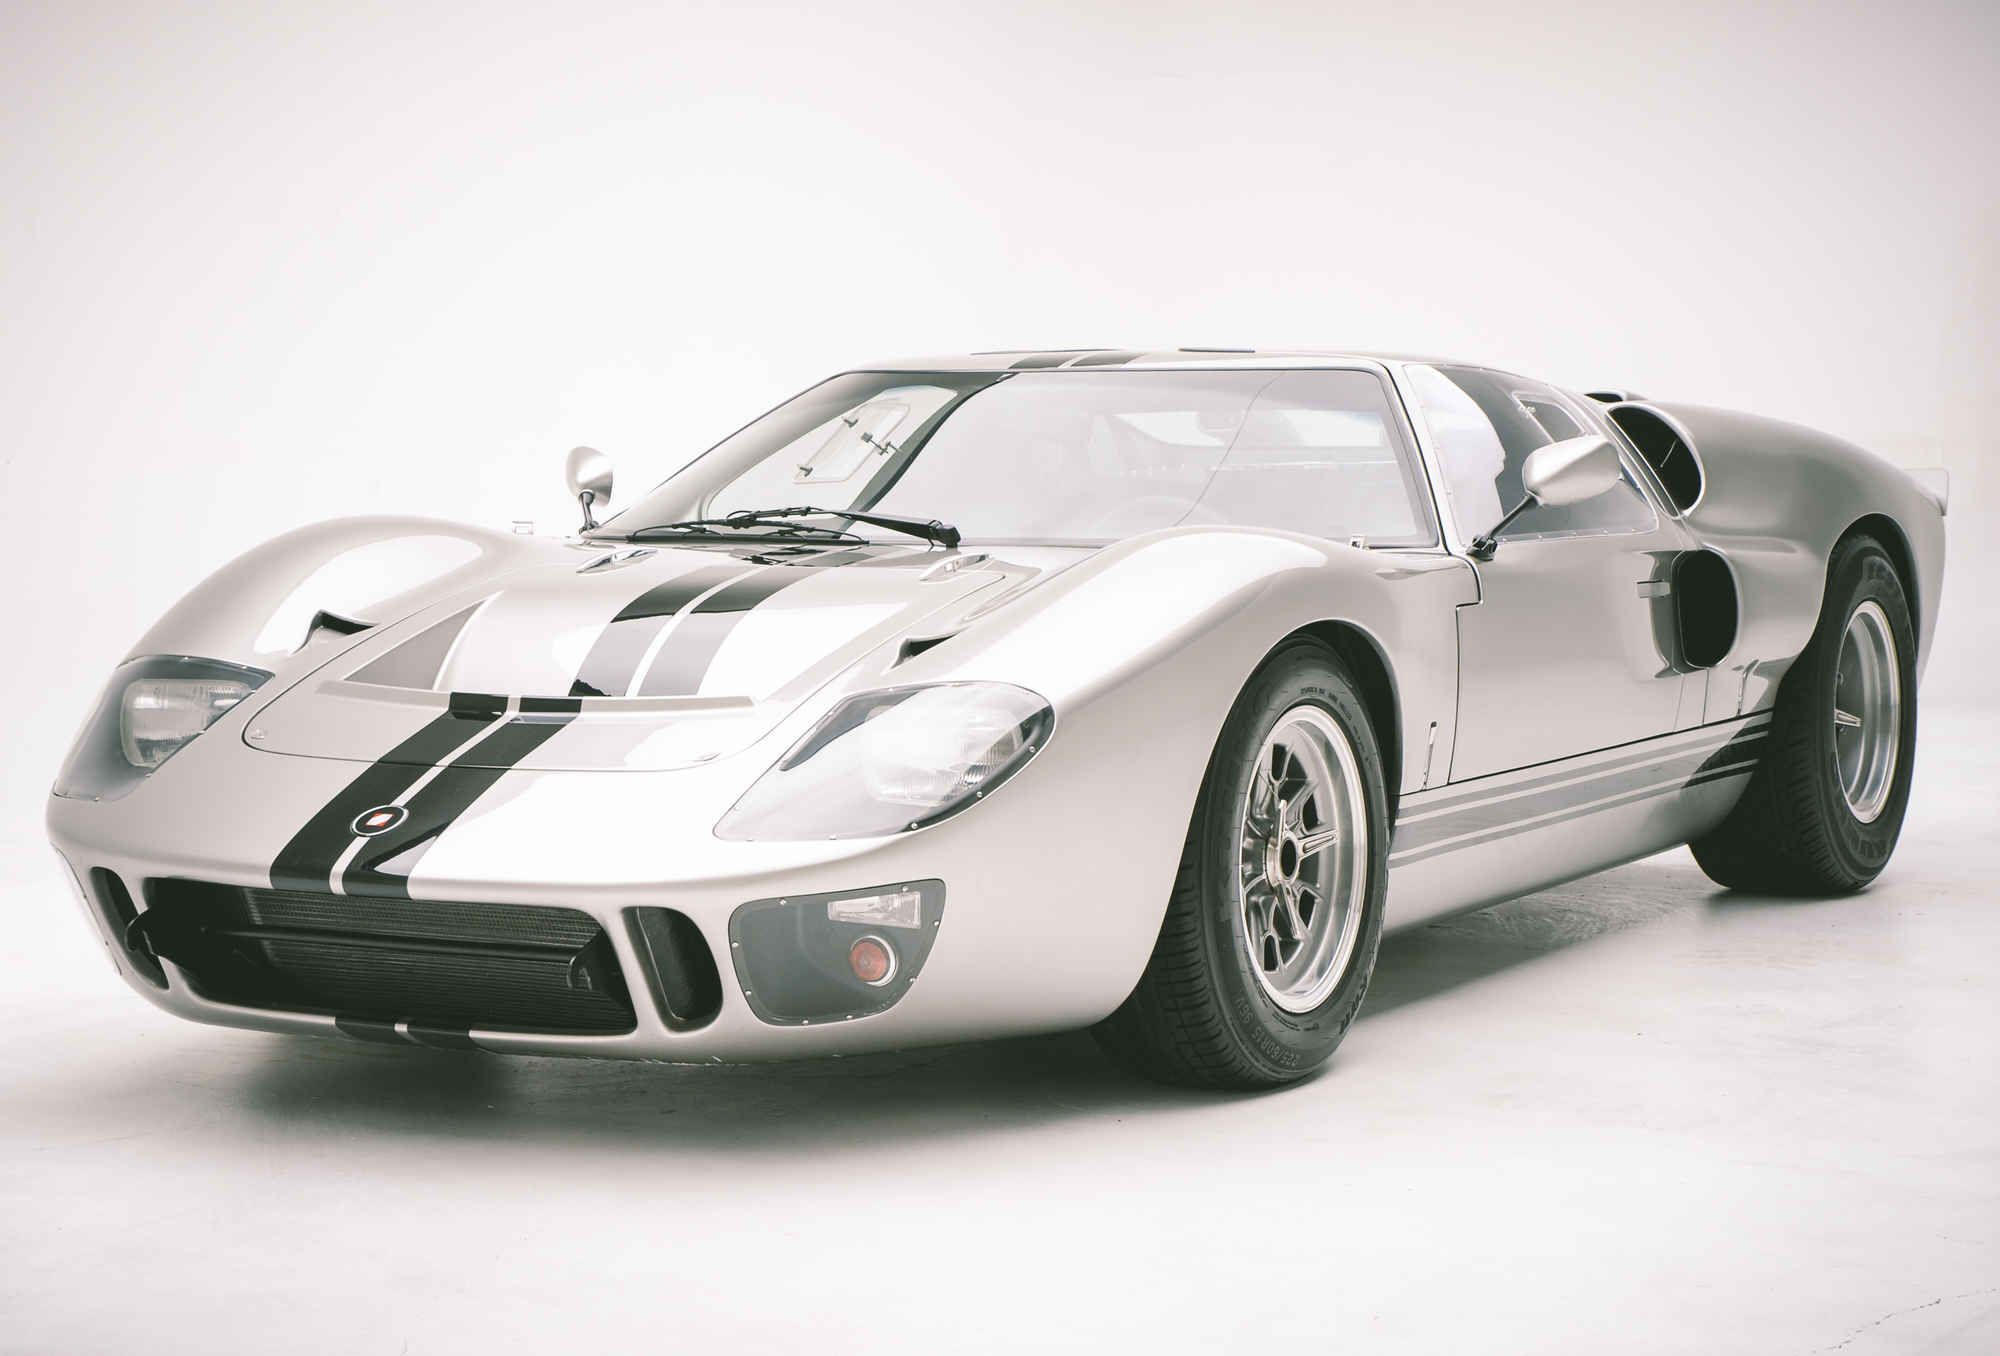 The Best 1950s and 1960s-era Race Cars For Sale On eBay ...1950s Cars For Sale Ebay